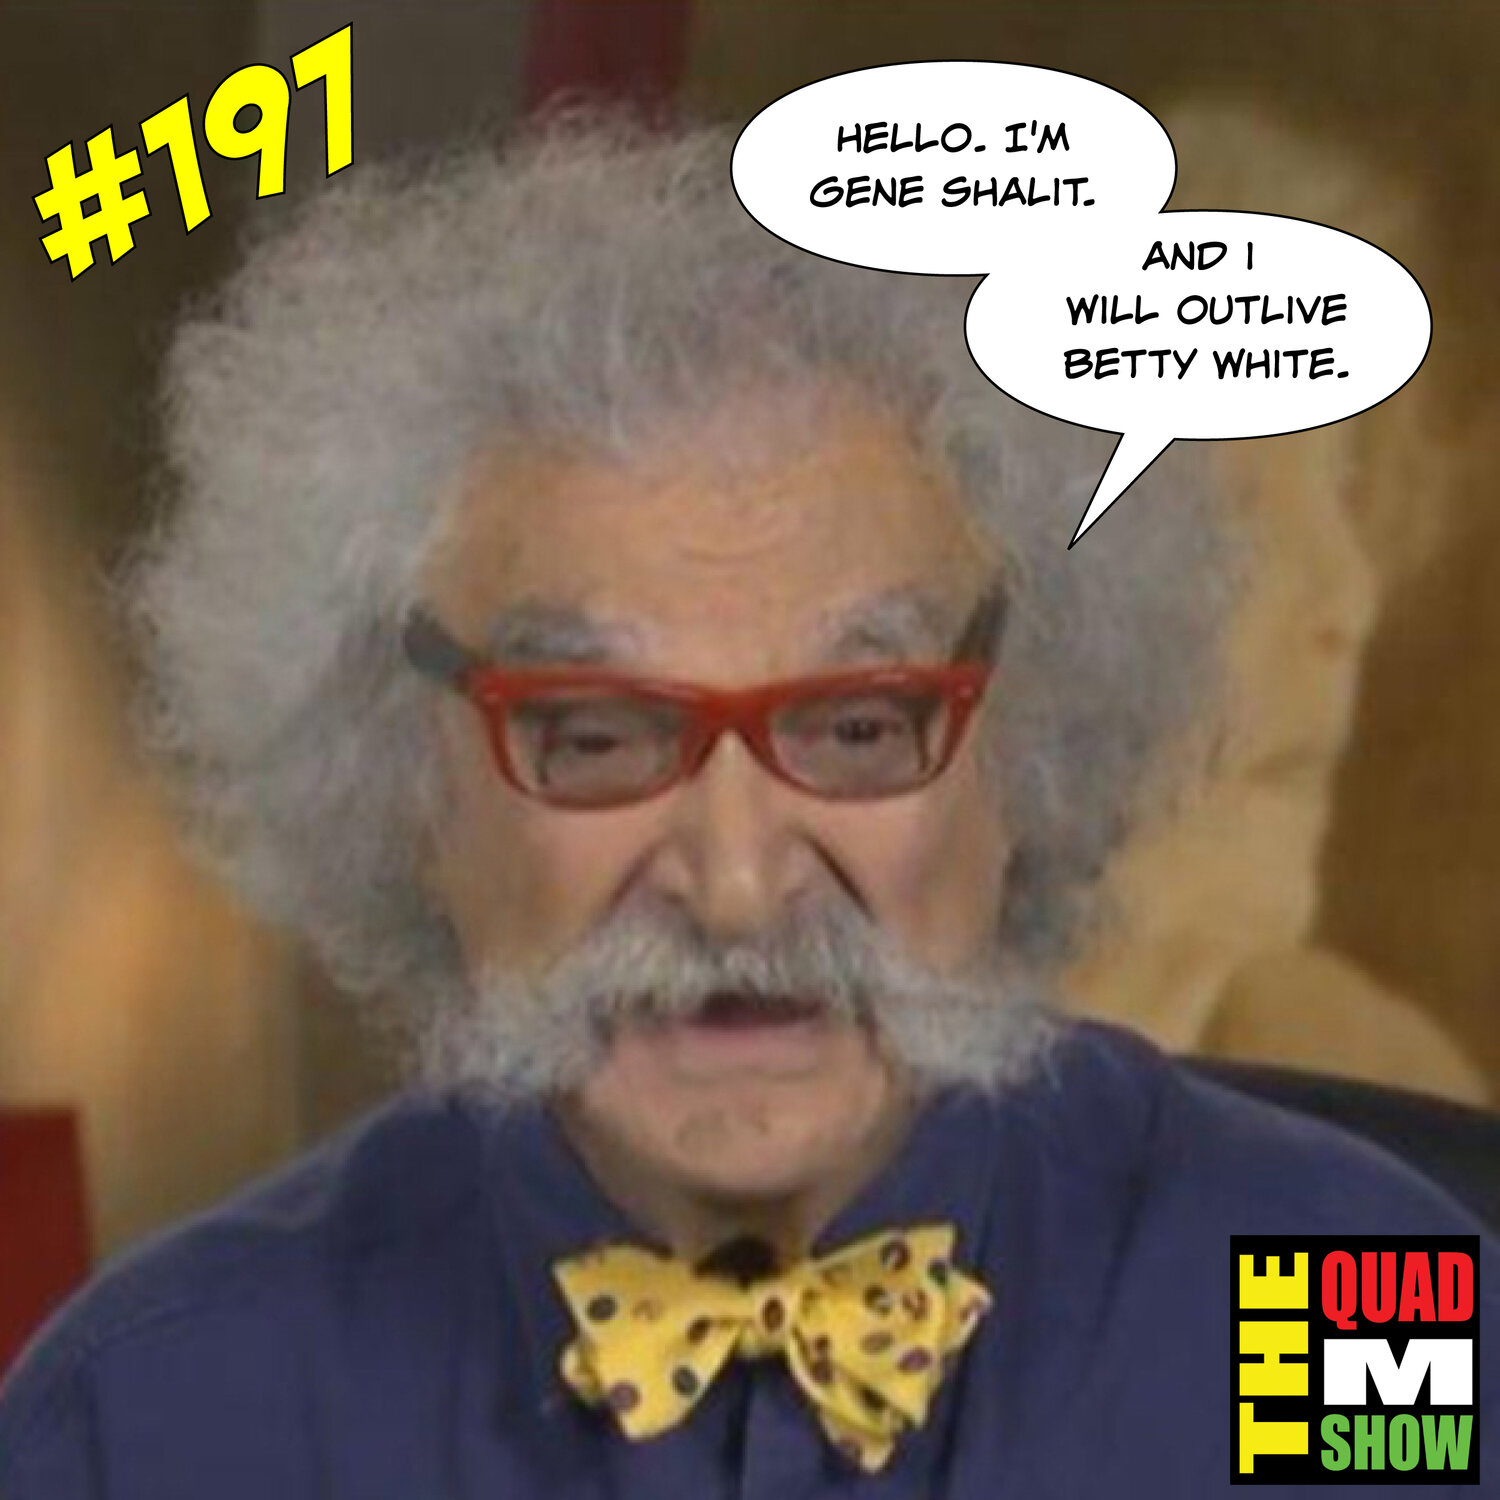 #197 - Pain Killers, Gene Shalit Vs Betty White, & Don't Exchange The Jersey